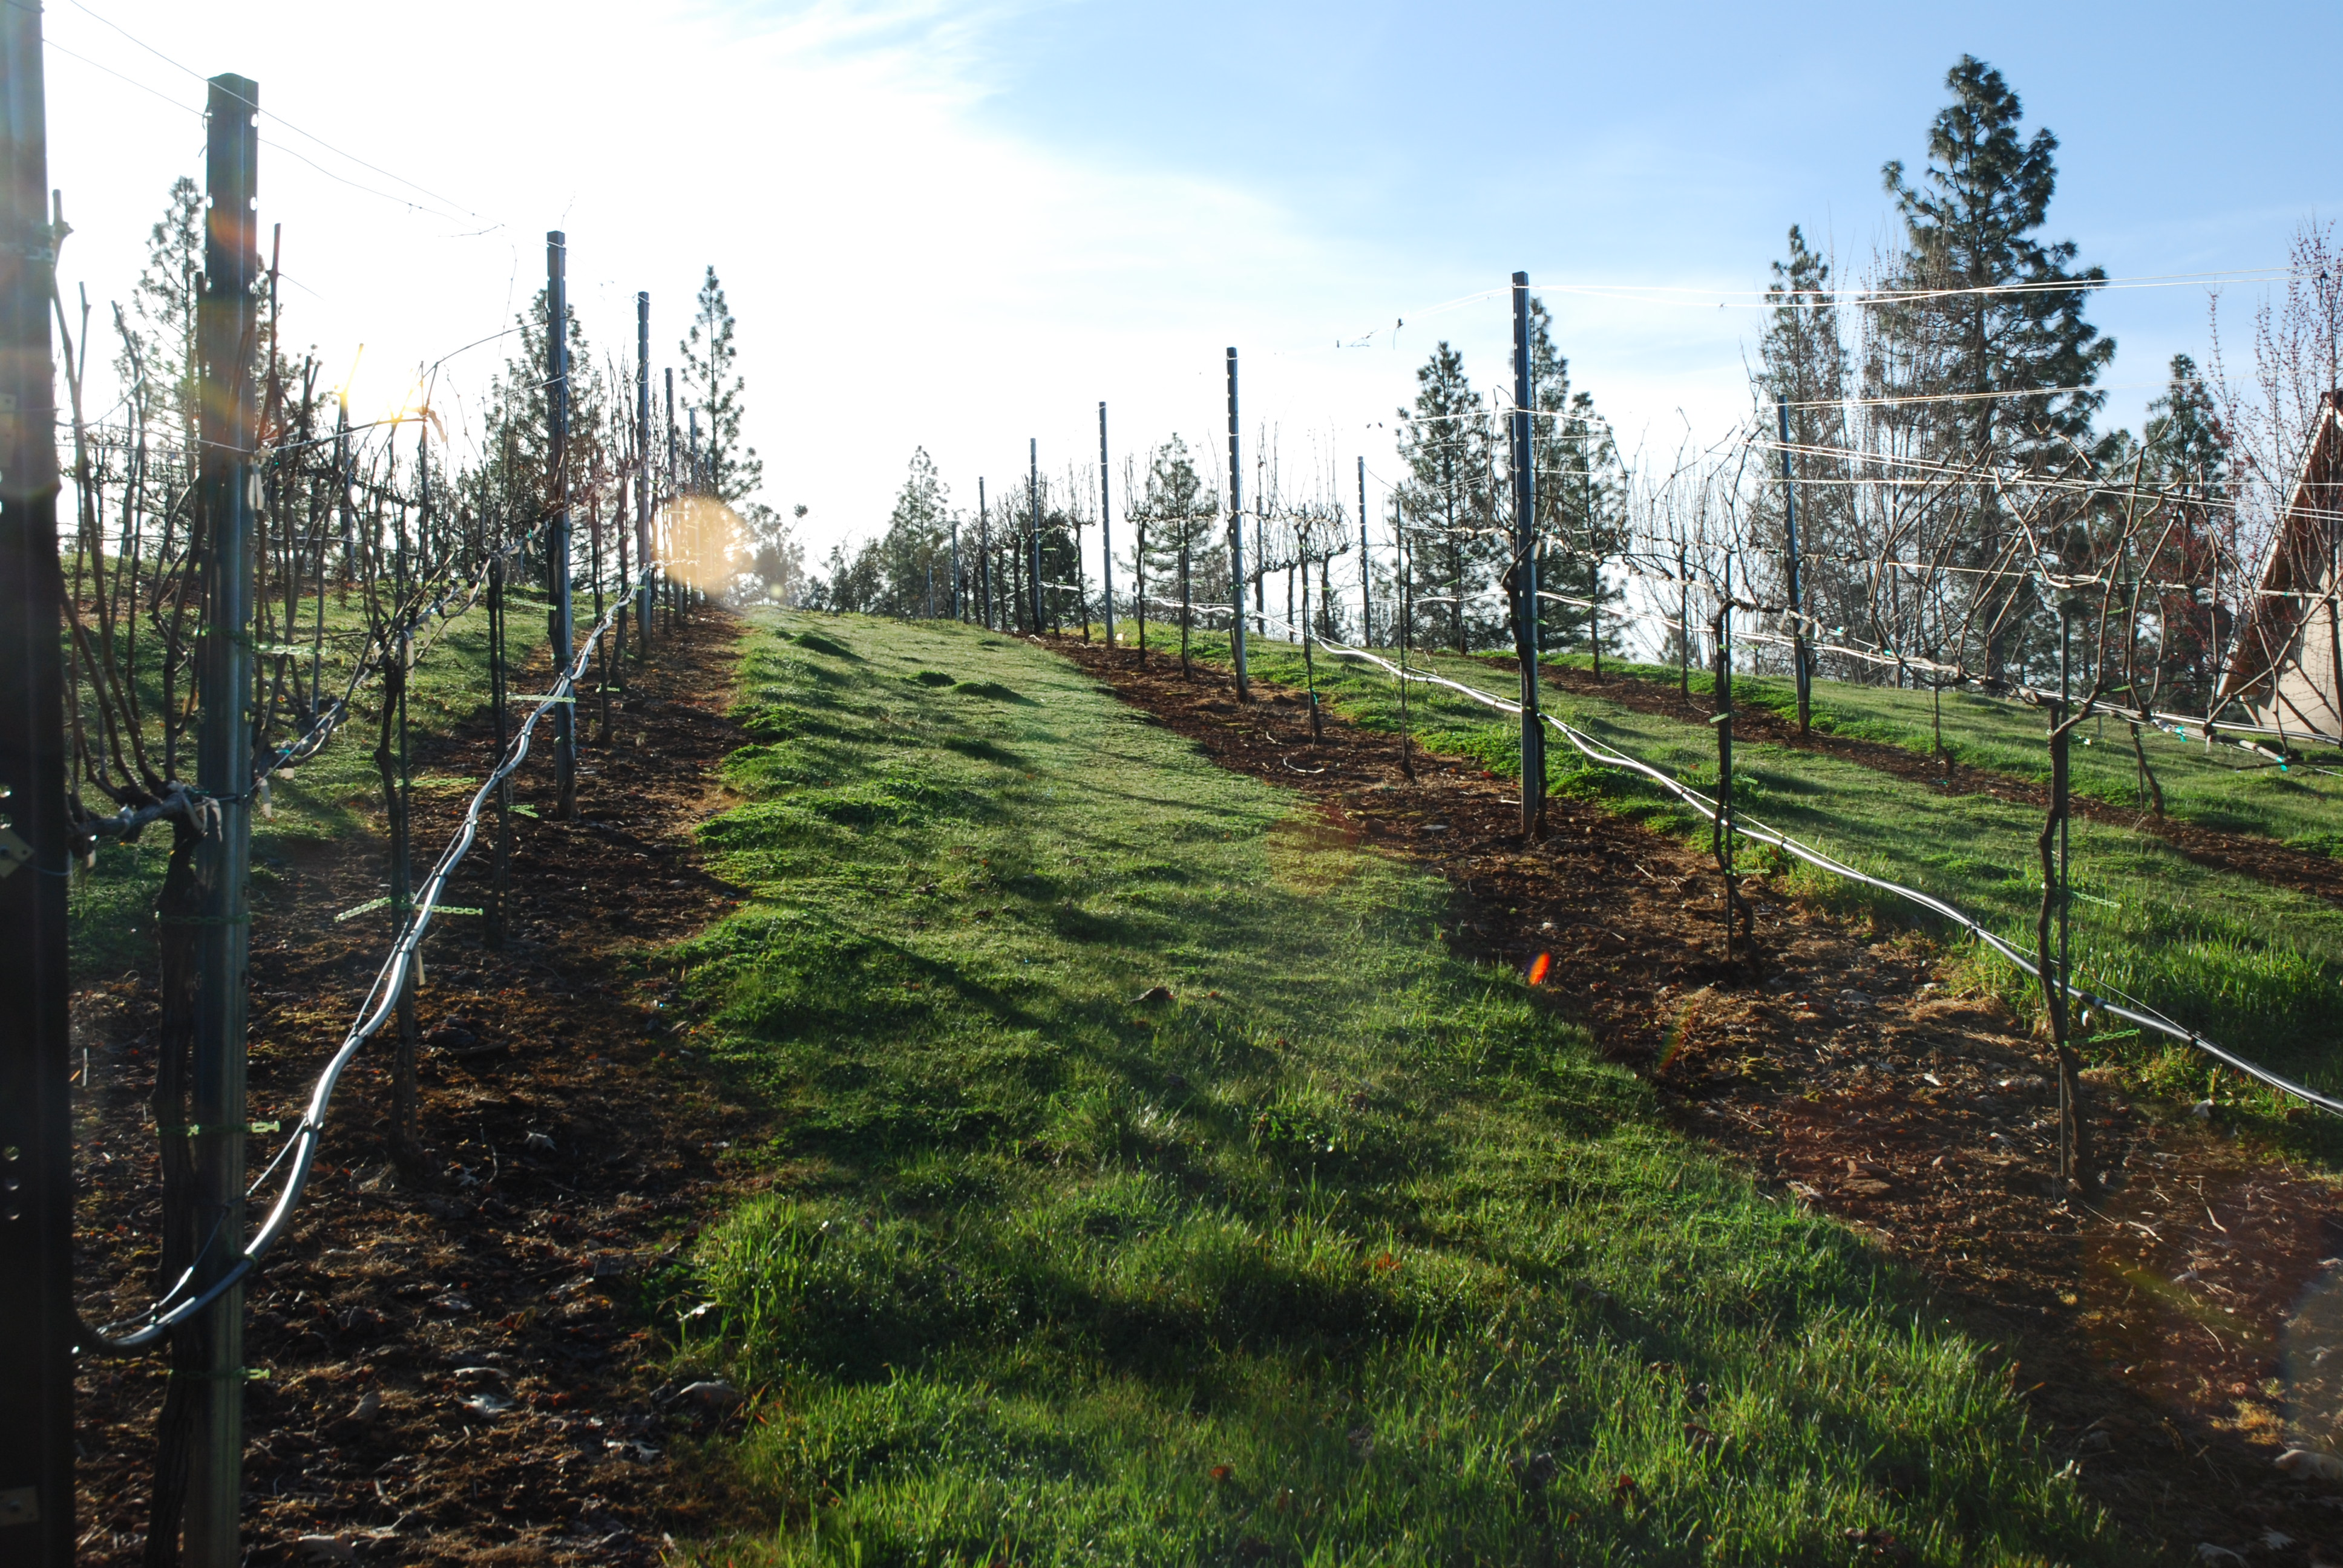 Spring Pre-Pruning, Cover Corp, and Rows Sprayed Out